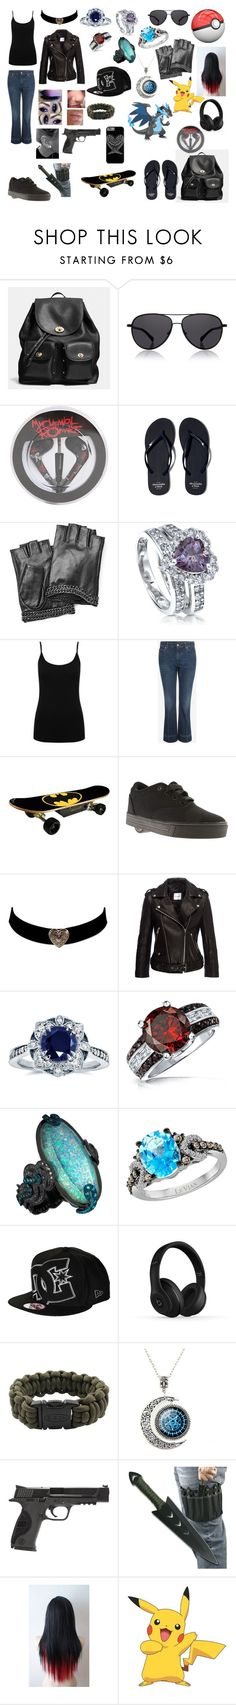 """""""Pokemon Trainer oc"""" by livyv123 ❤ liked on Polyvore featuring Coach, The Row, Abercrombie & Fitch, Karl Lagerfeld, BERRICLE, M&Co, Alexander McQueen, Maverix, Heelys and Kobelli"""